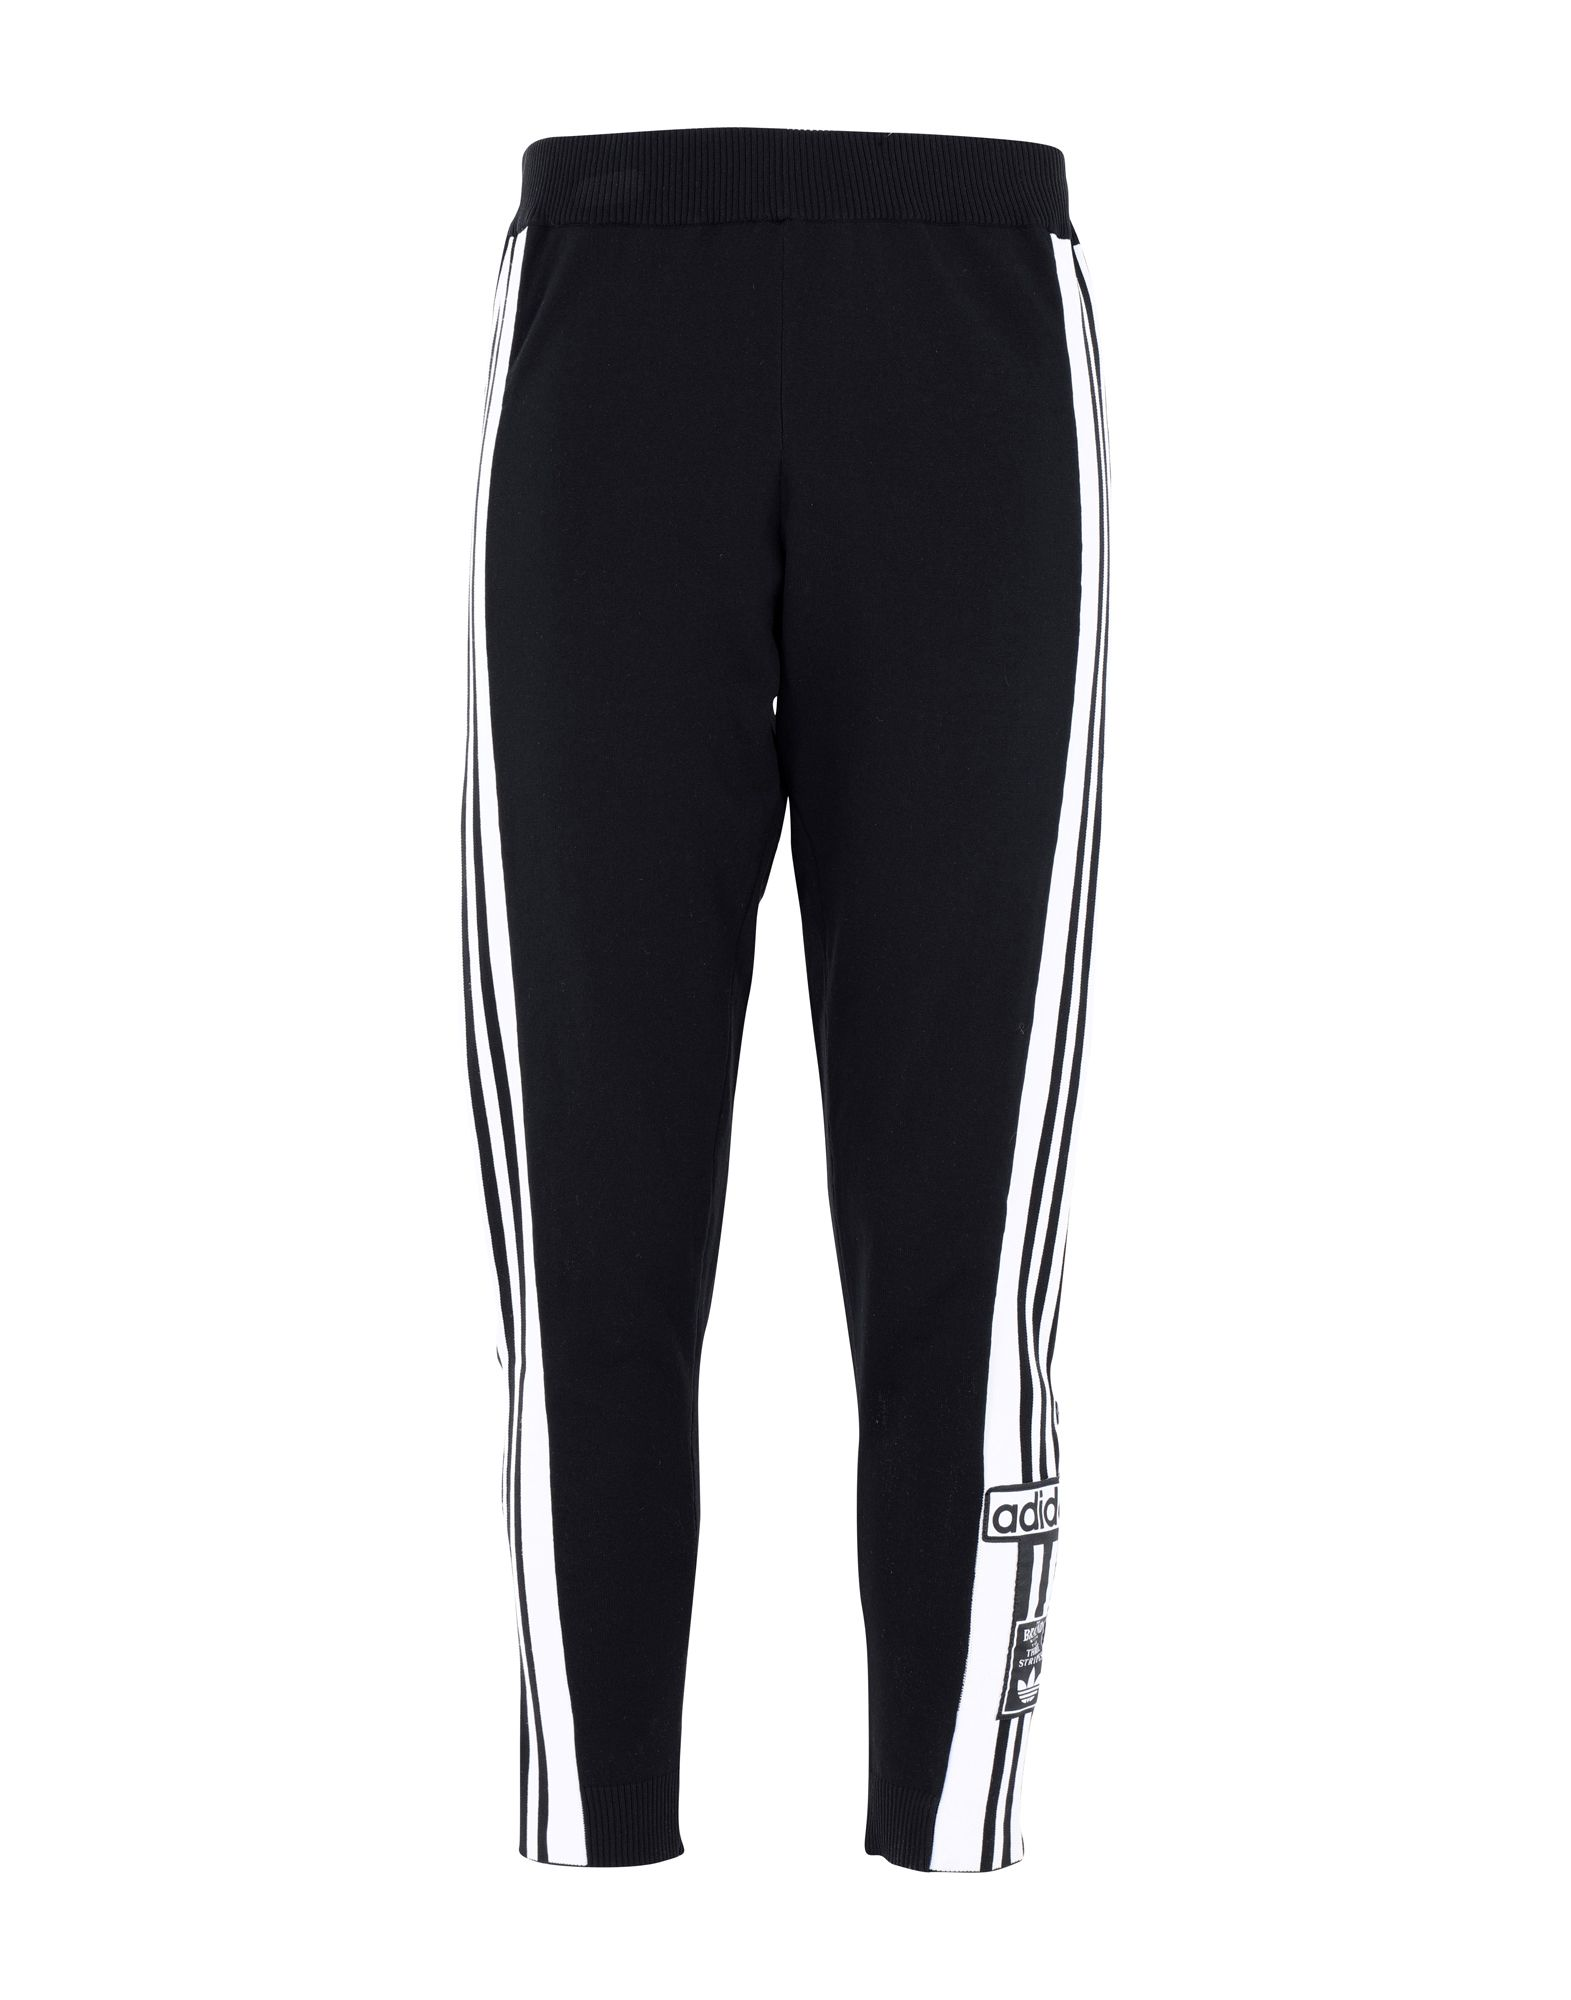 678d508d ADIDAS ORIGINALS Leggings and performance trousers - Sportswear | YOOX.COM